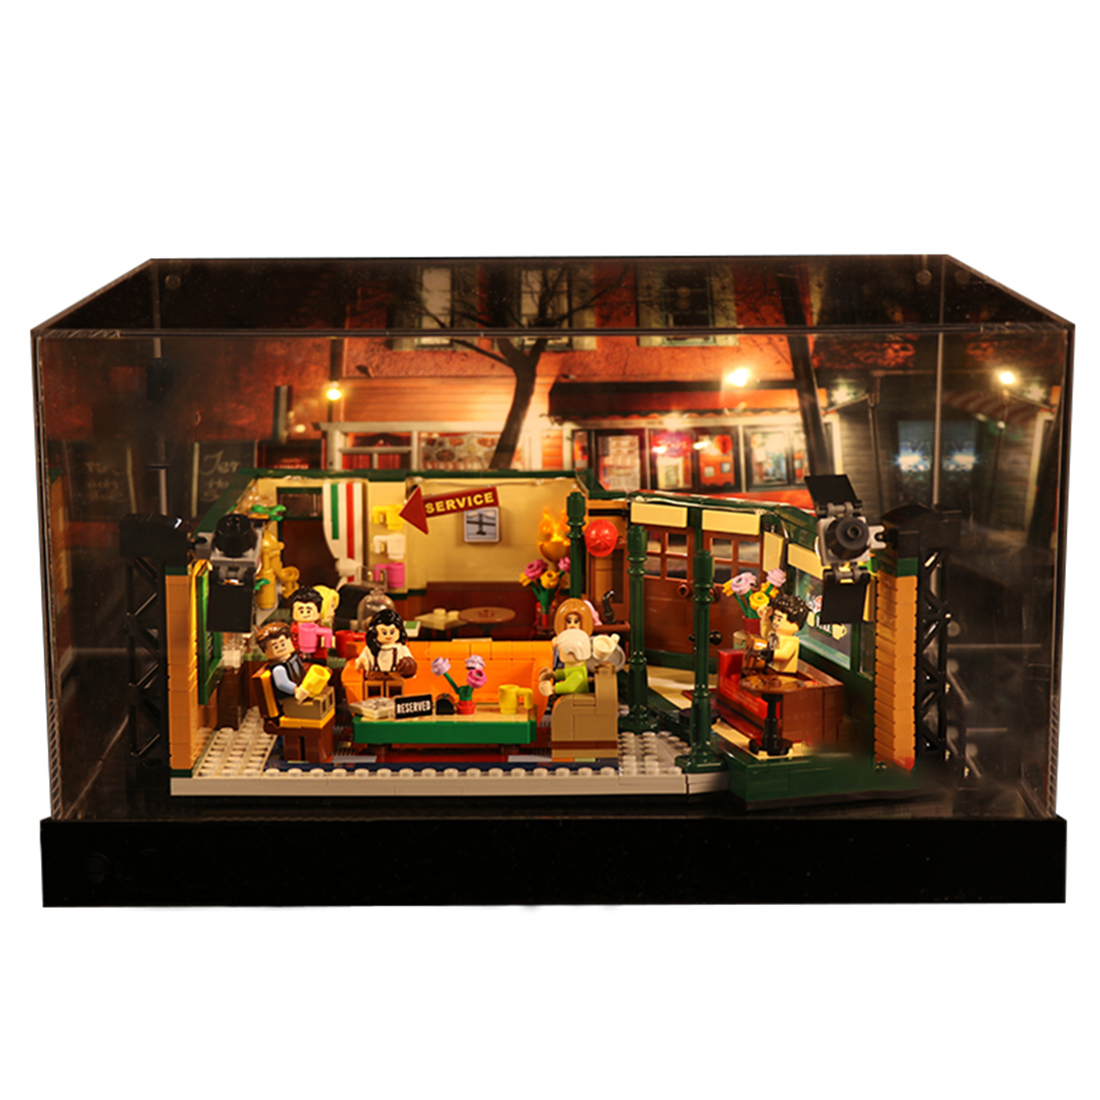 Building Block Acrylic Dustproof Display Box Show Box for 21319 Friends Coffee Shop Display Box Included Only- Type A